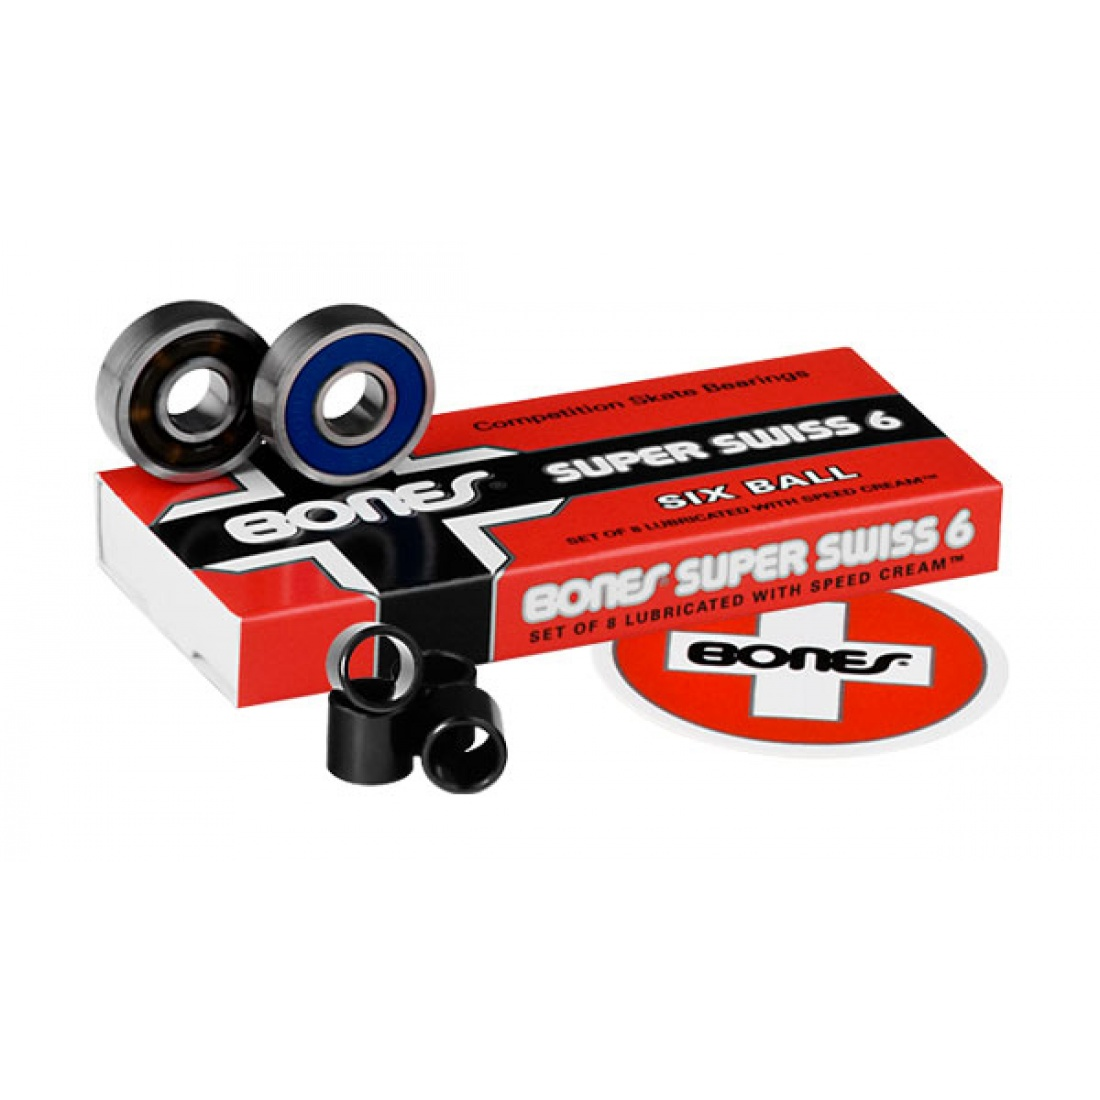 Bones Super Swiss 6 Balls Bearings